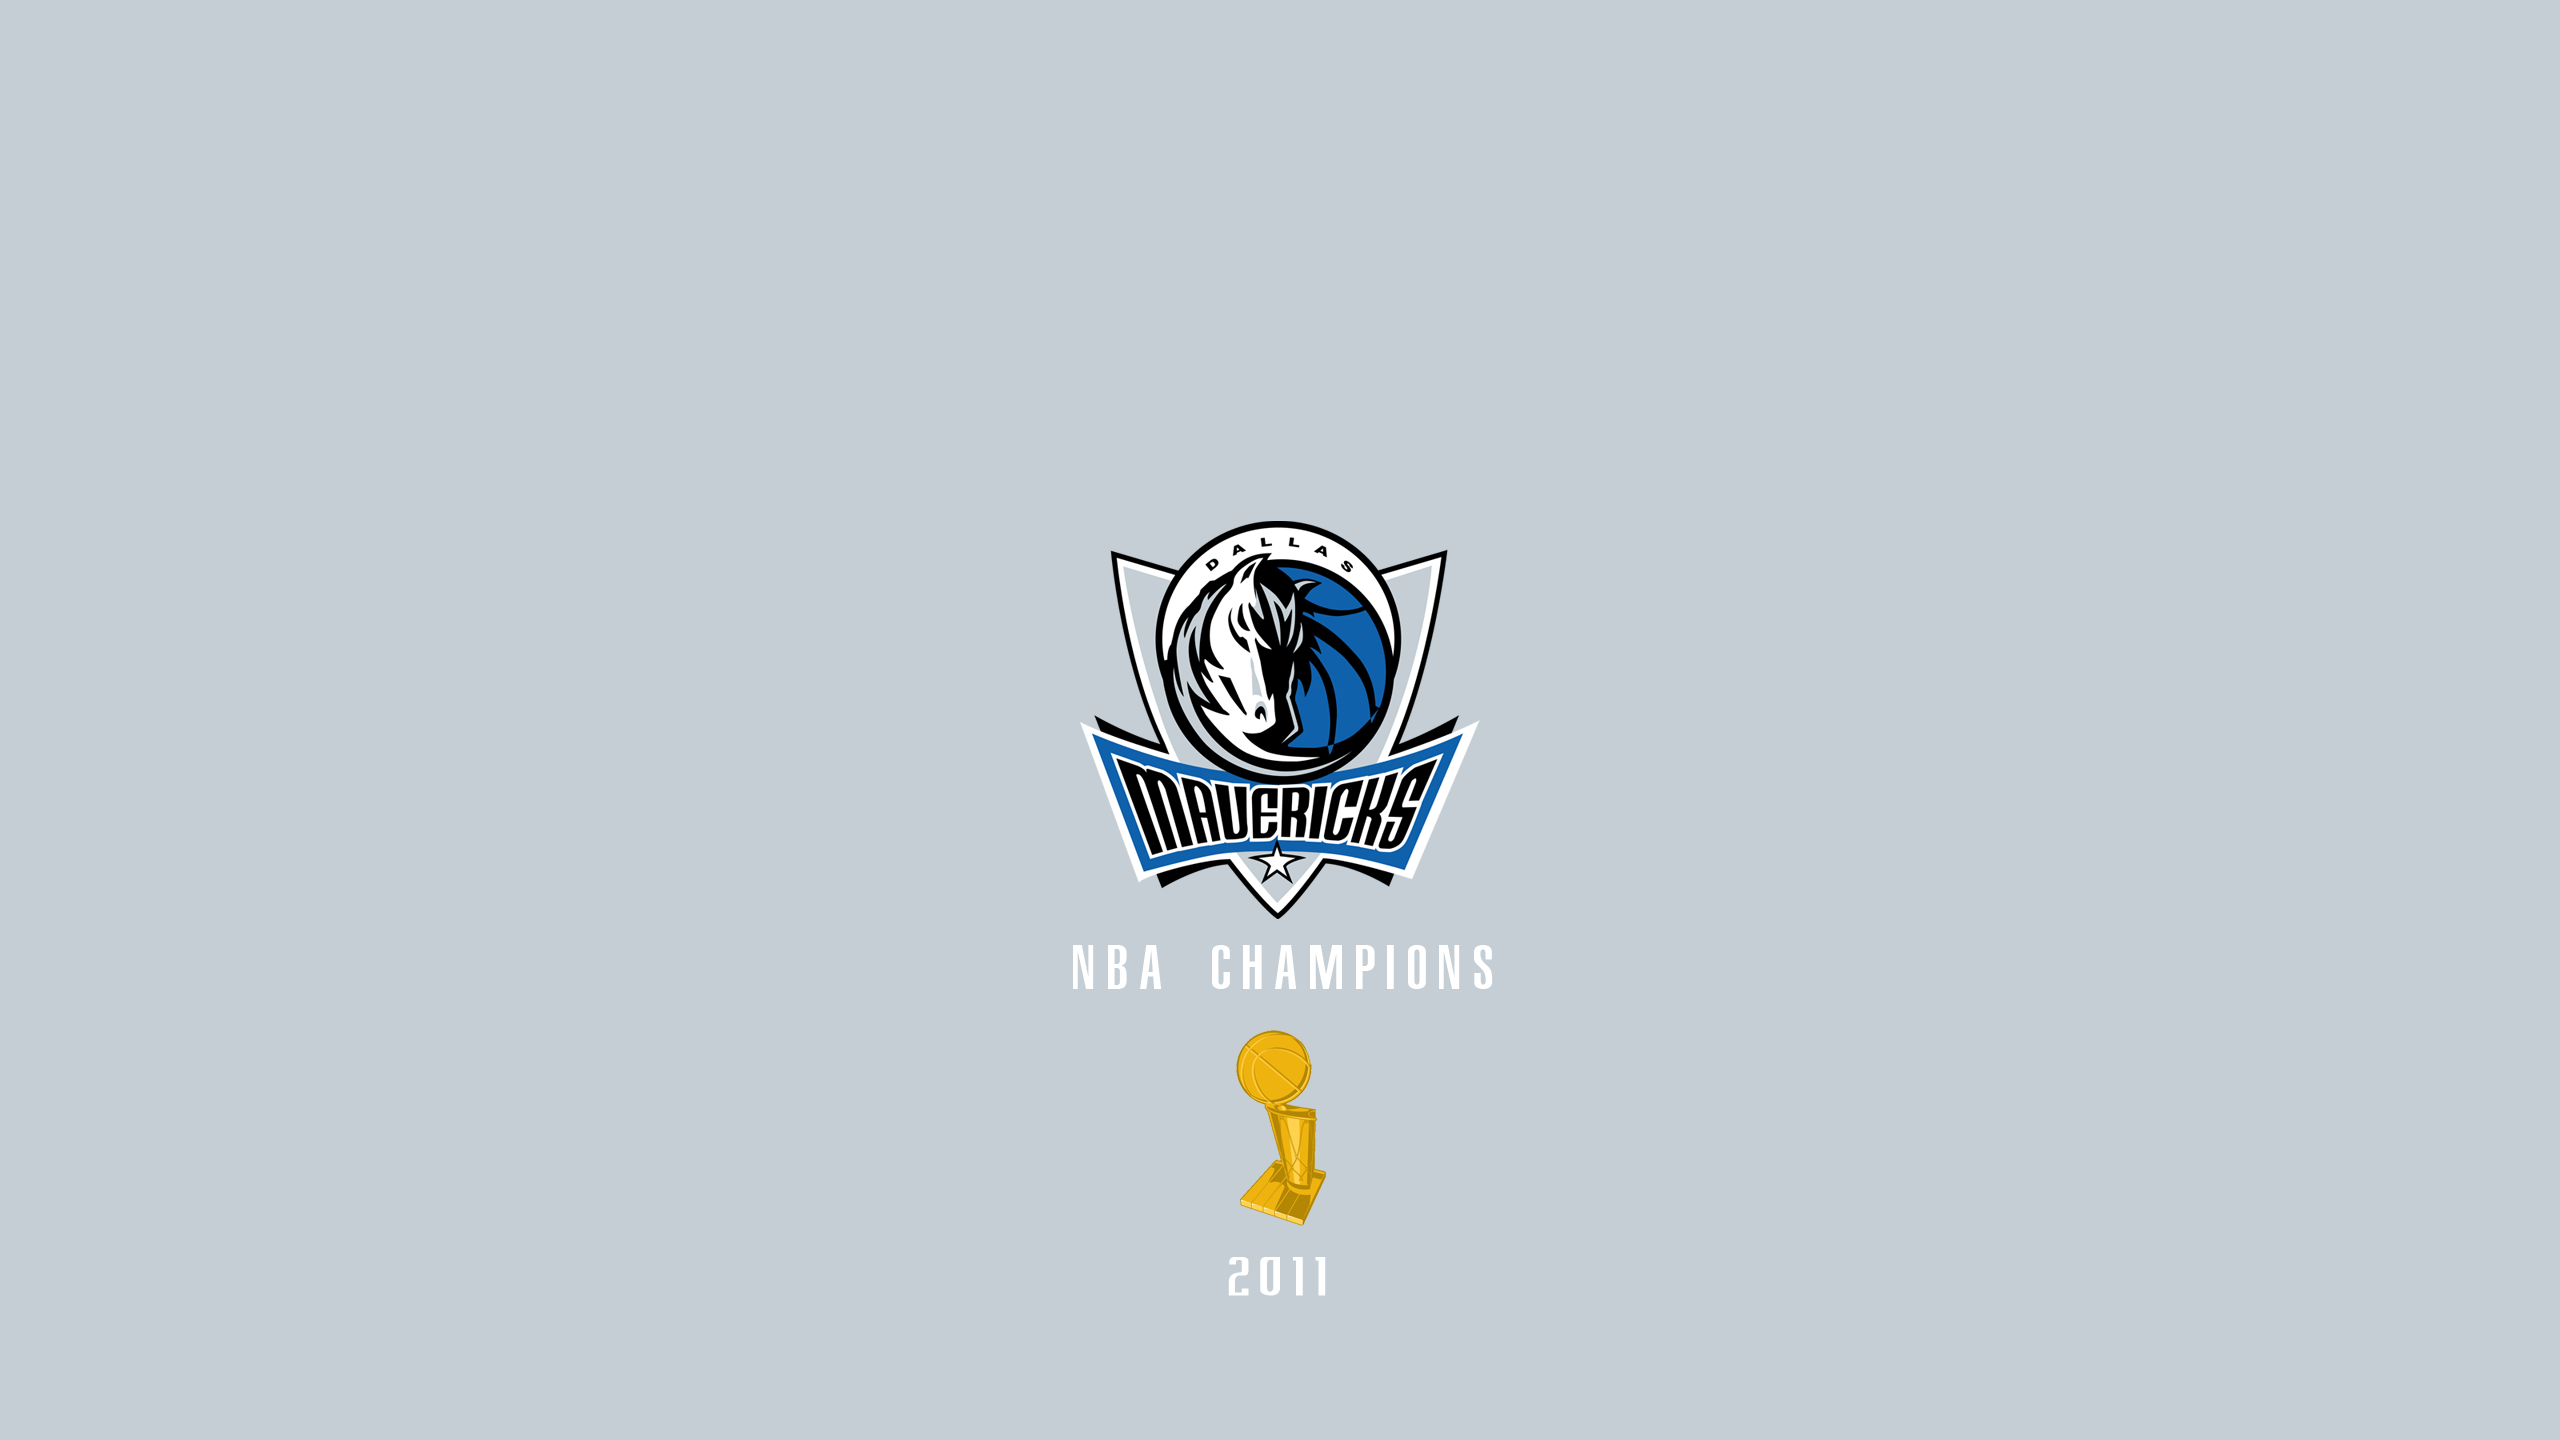 Dallas Mavericks - NBA Champs